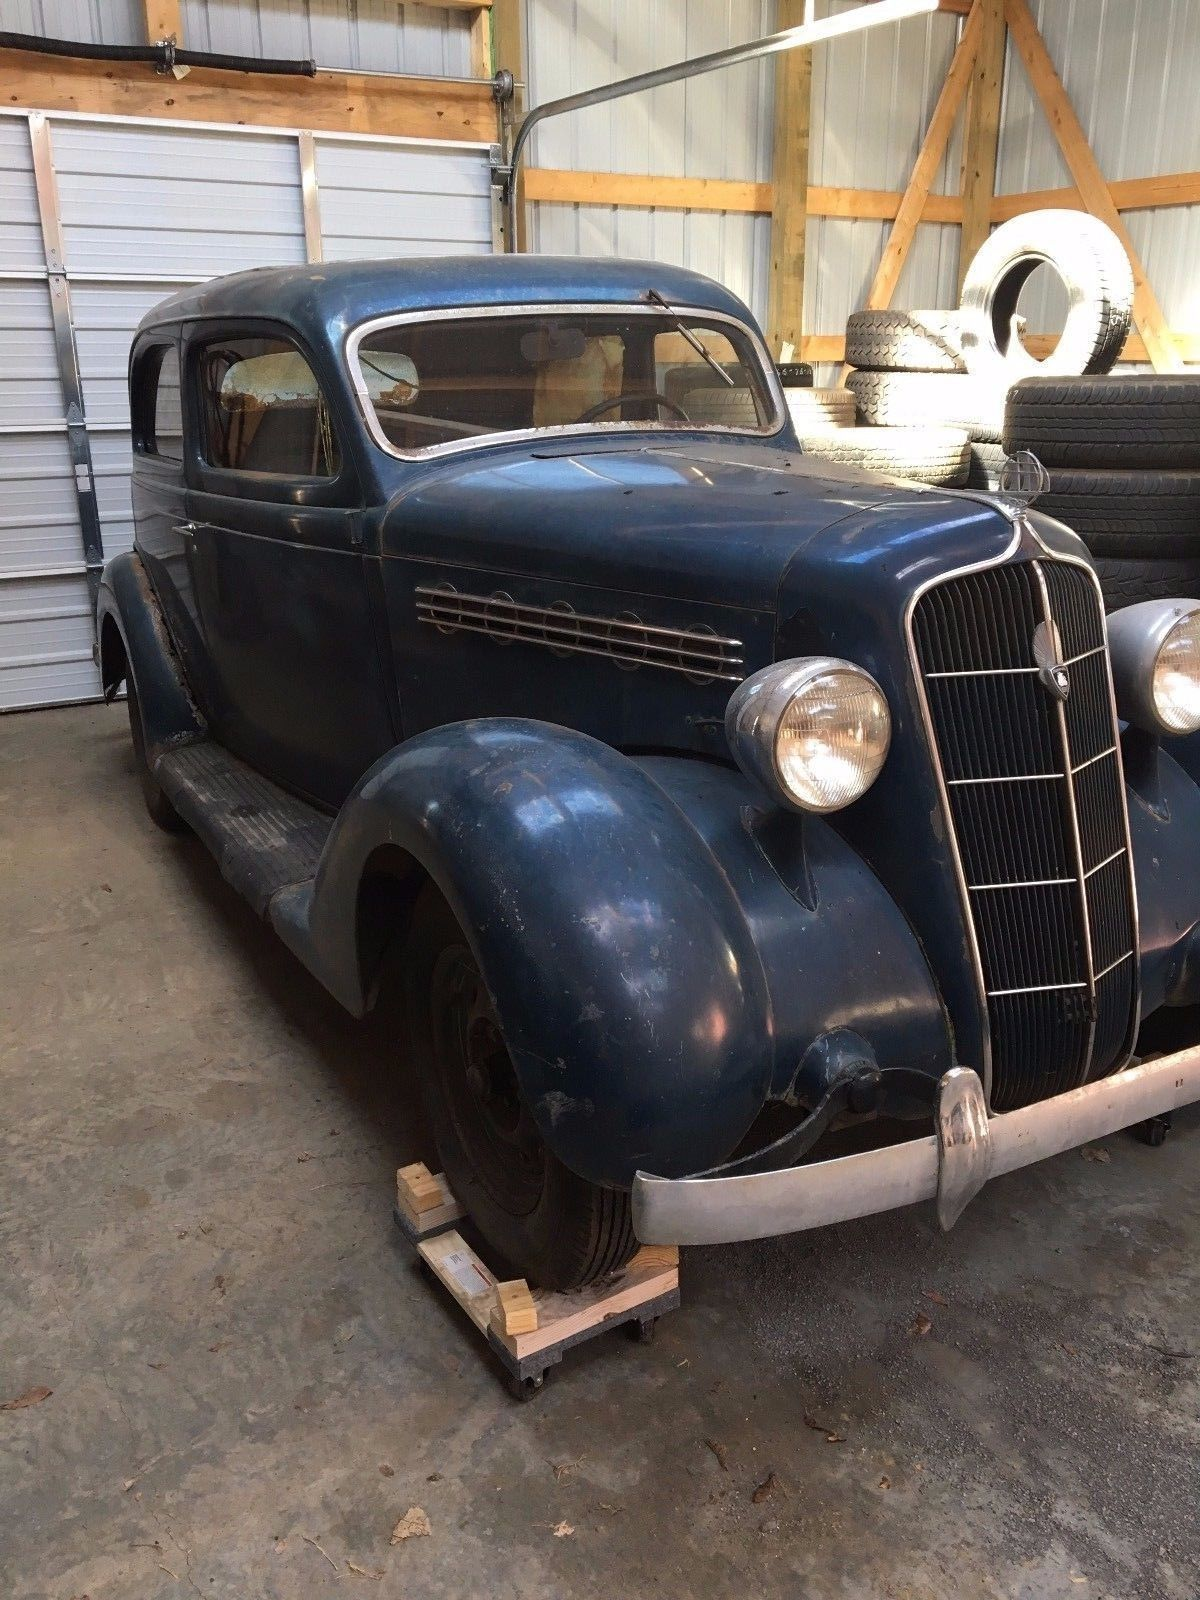 barn find 1935 Plymouth project with working engine | Project cars ...